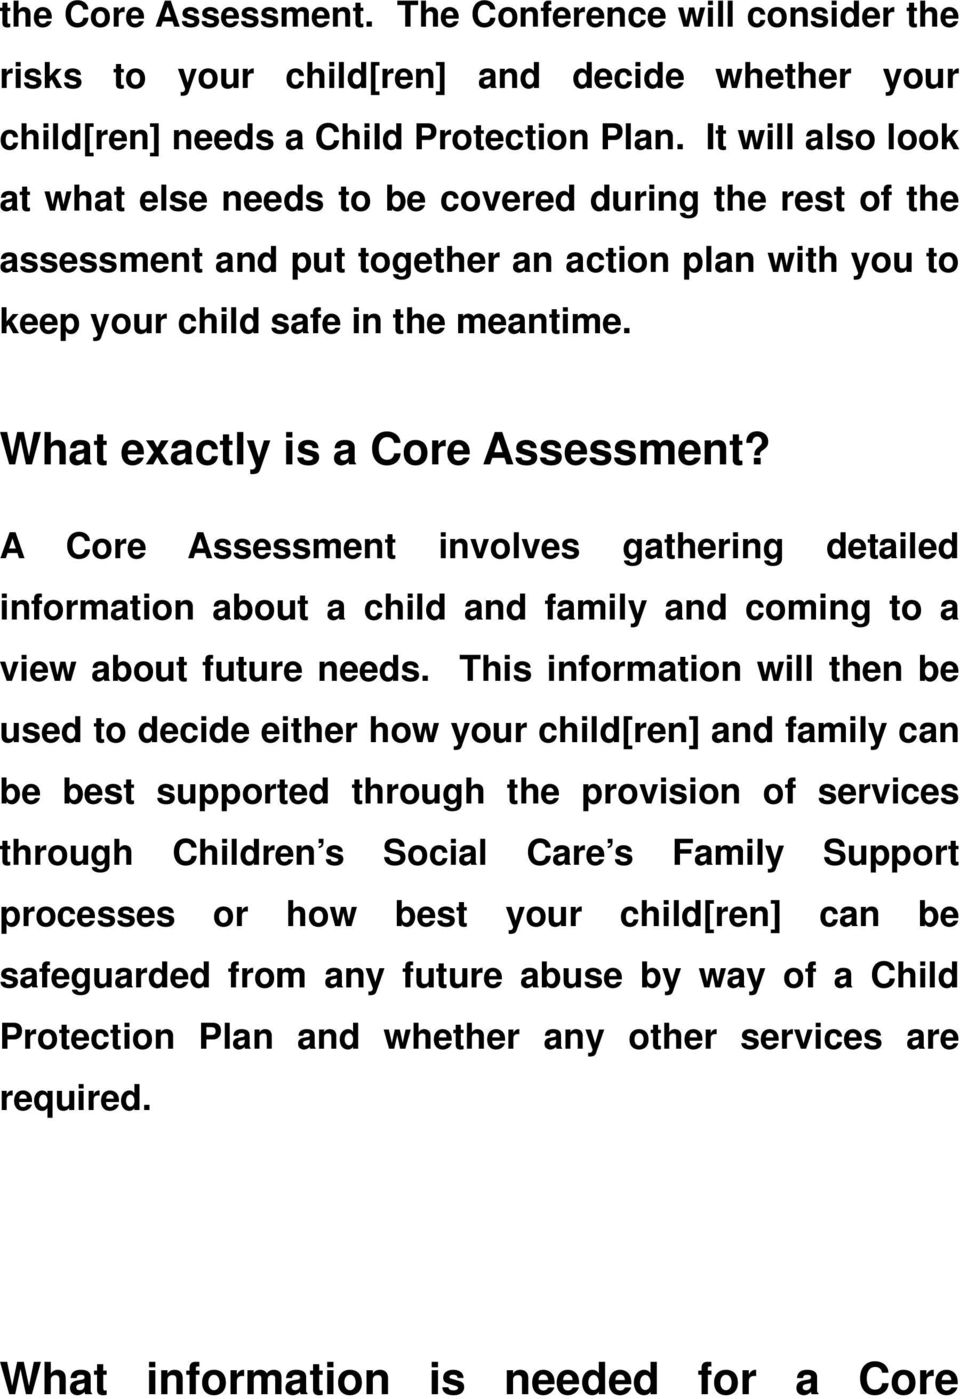 What exactly is a Core Assessment? A Core Assessment involves gathering detailed information about a child and family and coming to a view about future needs.